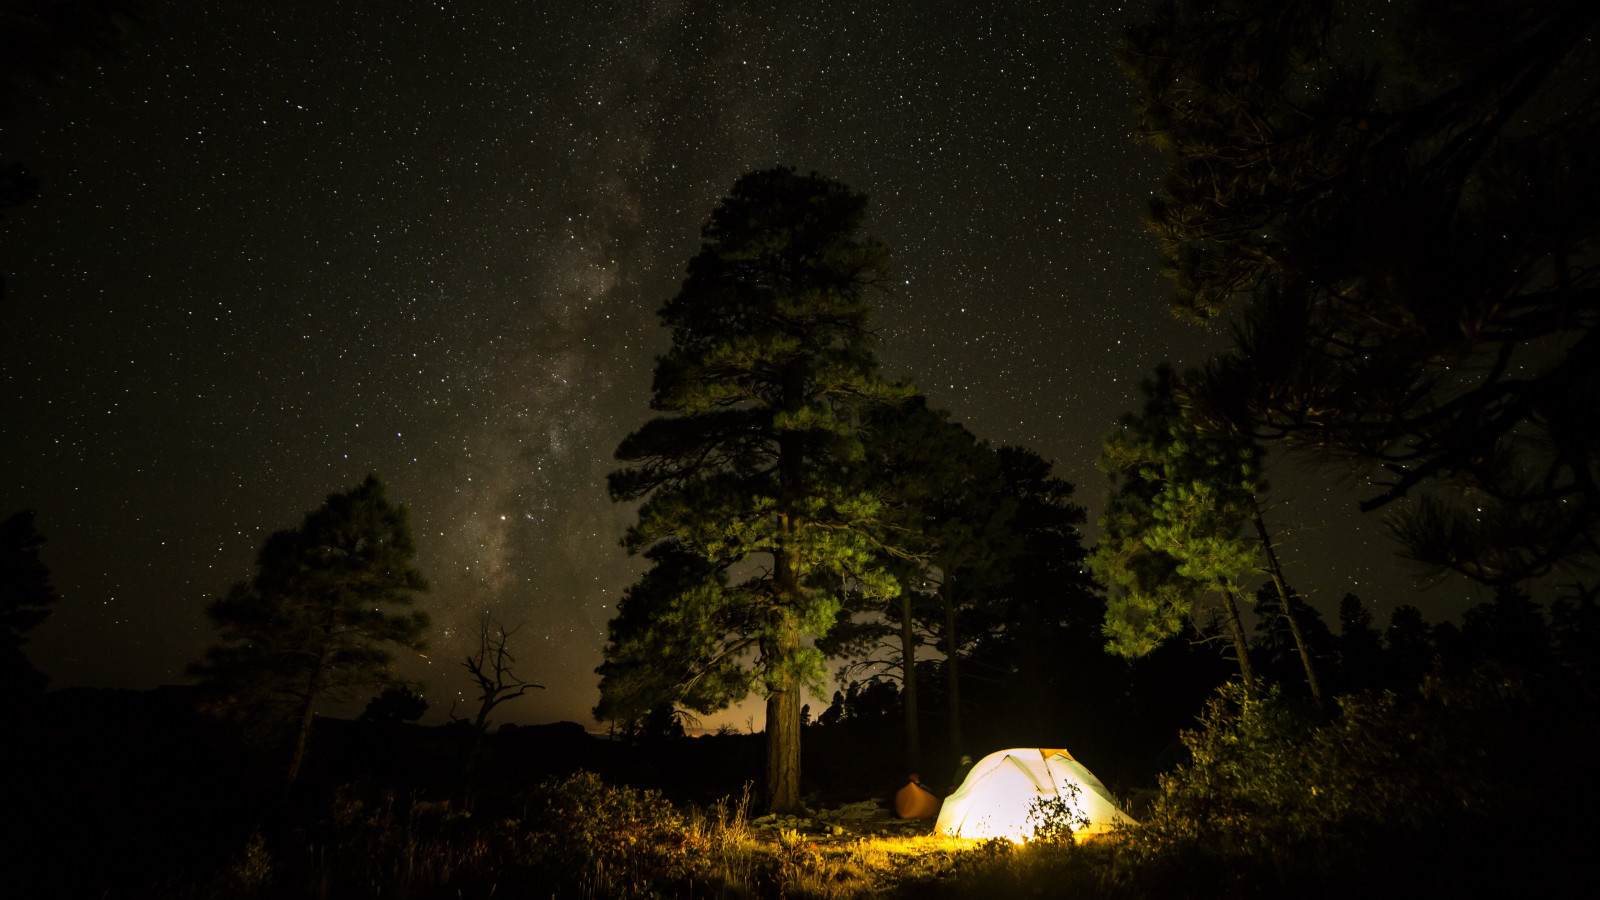 With tent under the night sky wallpaper 1600x900